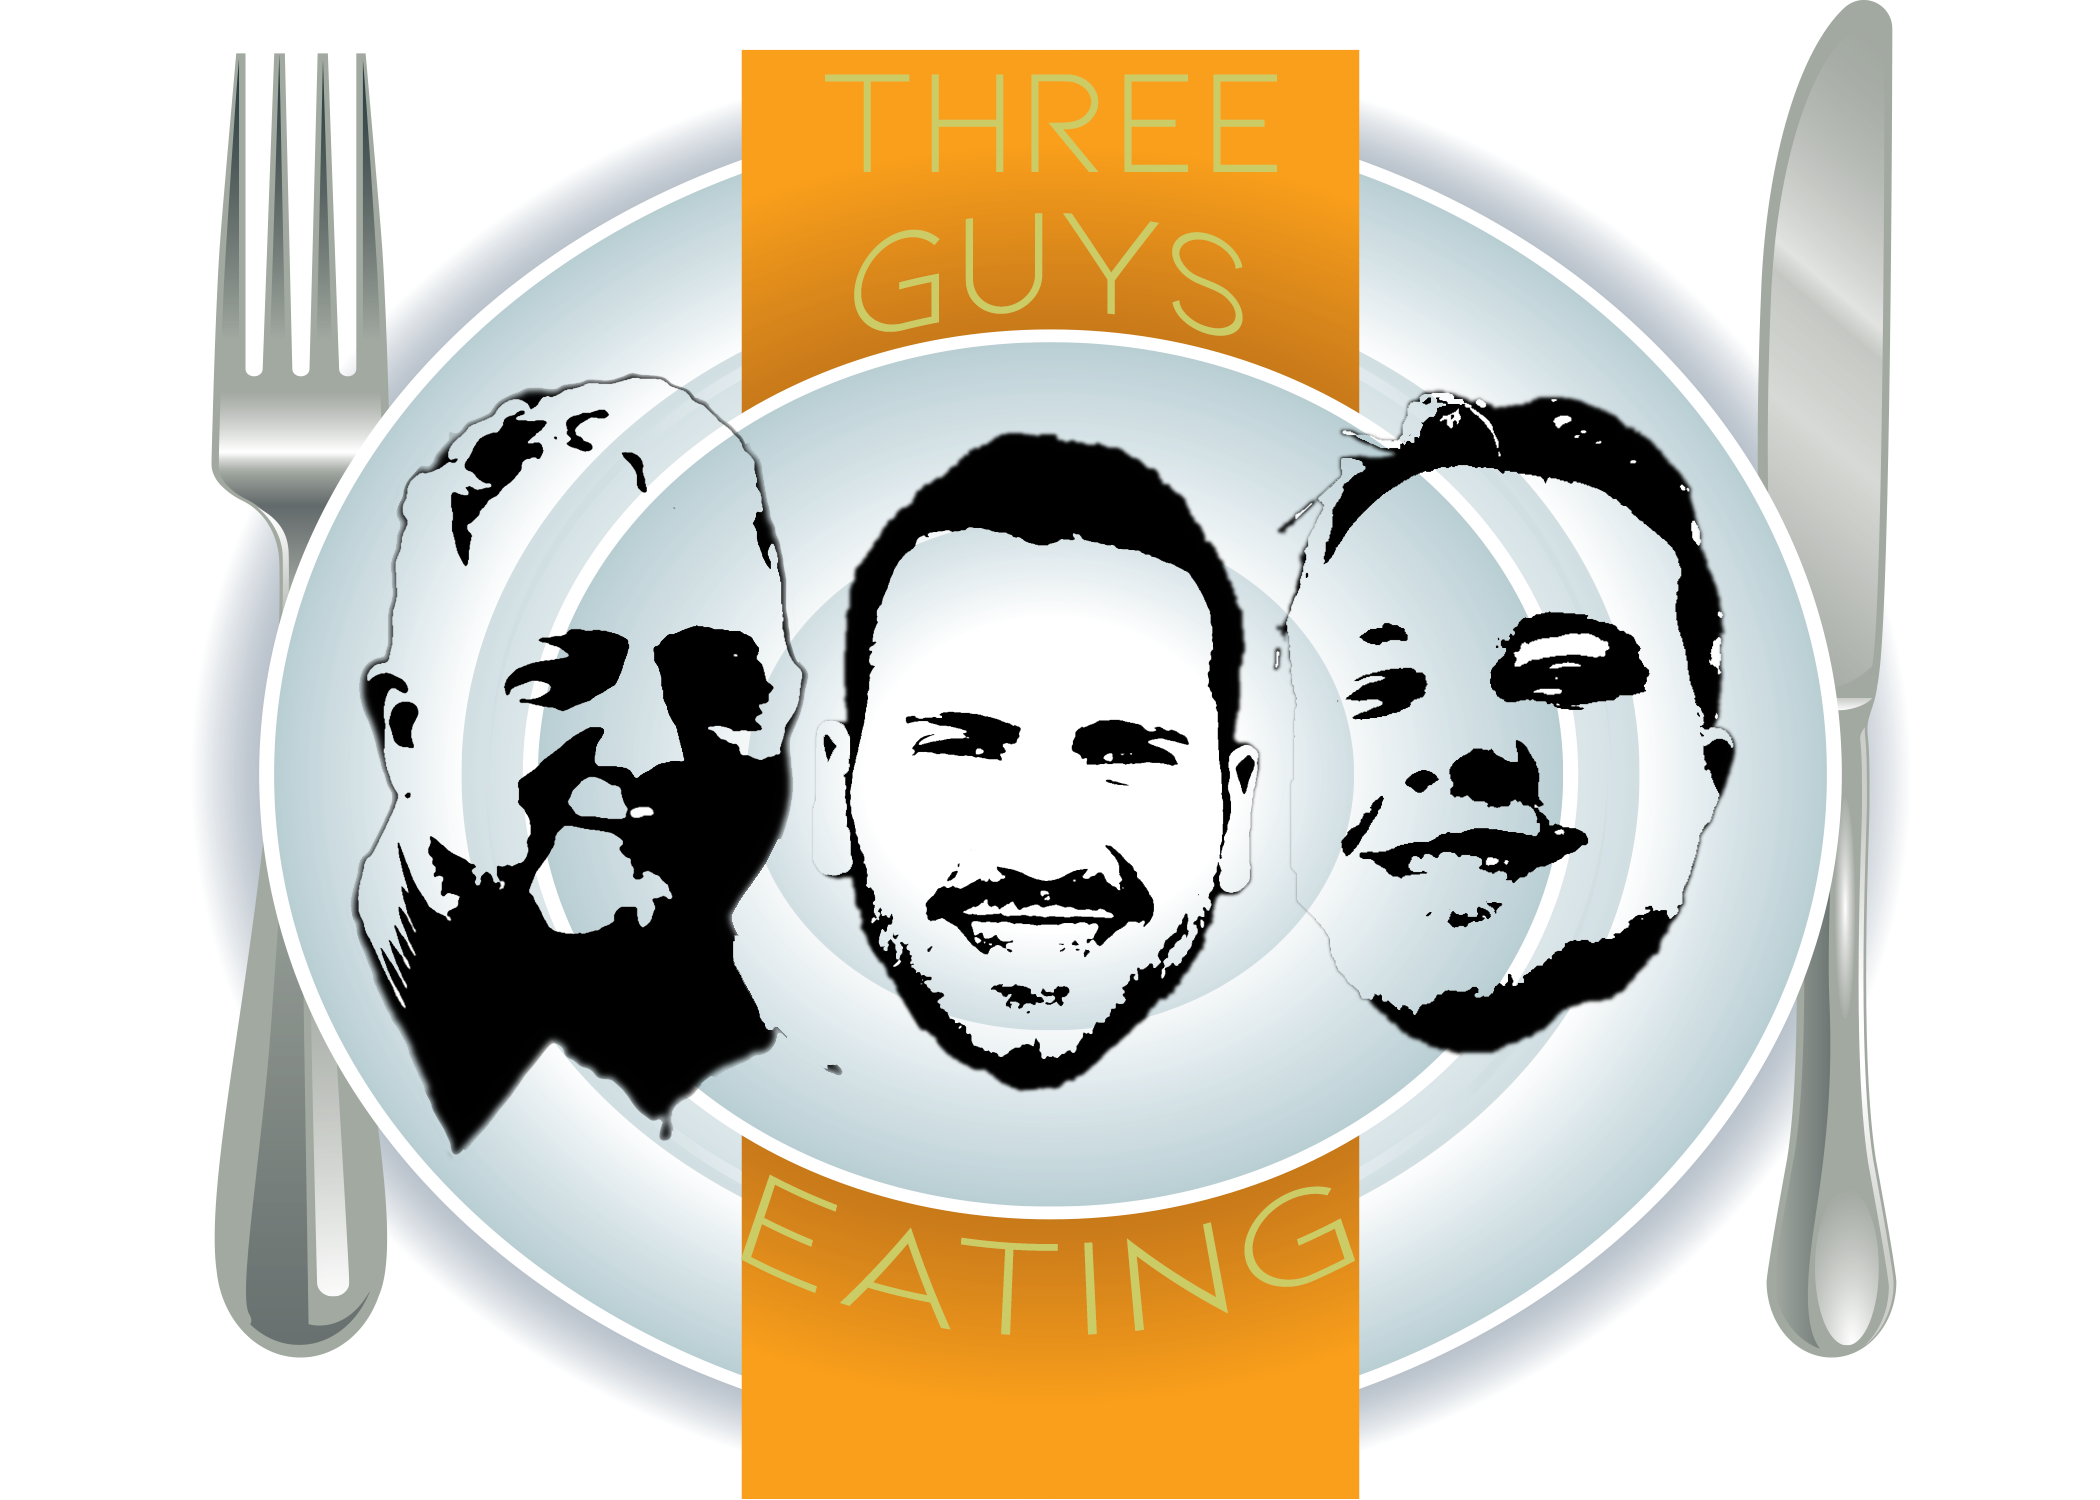 Three Guys Eating week four: Gigi's - Gi-Luxe burgers